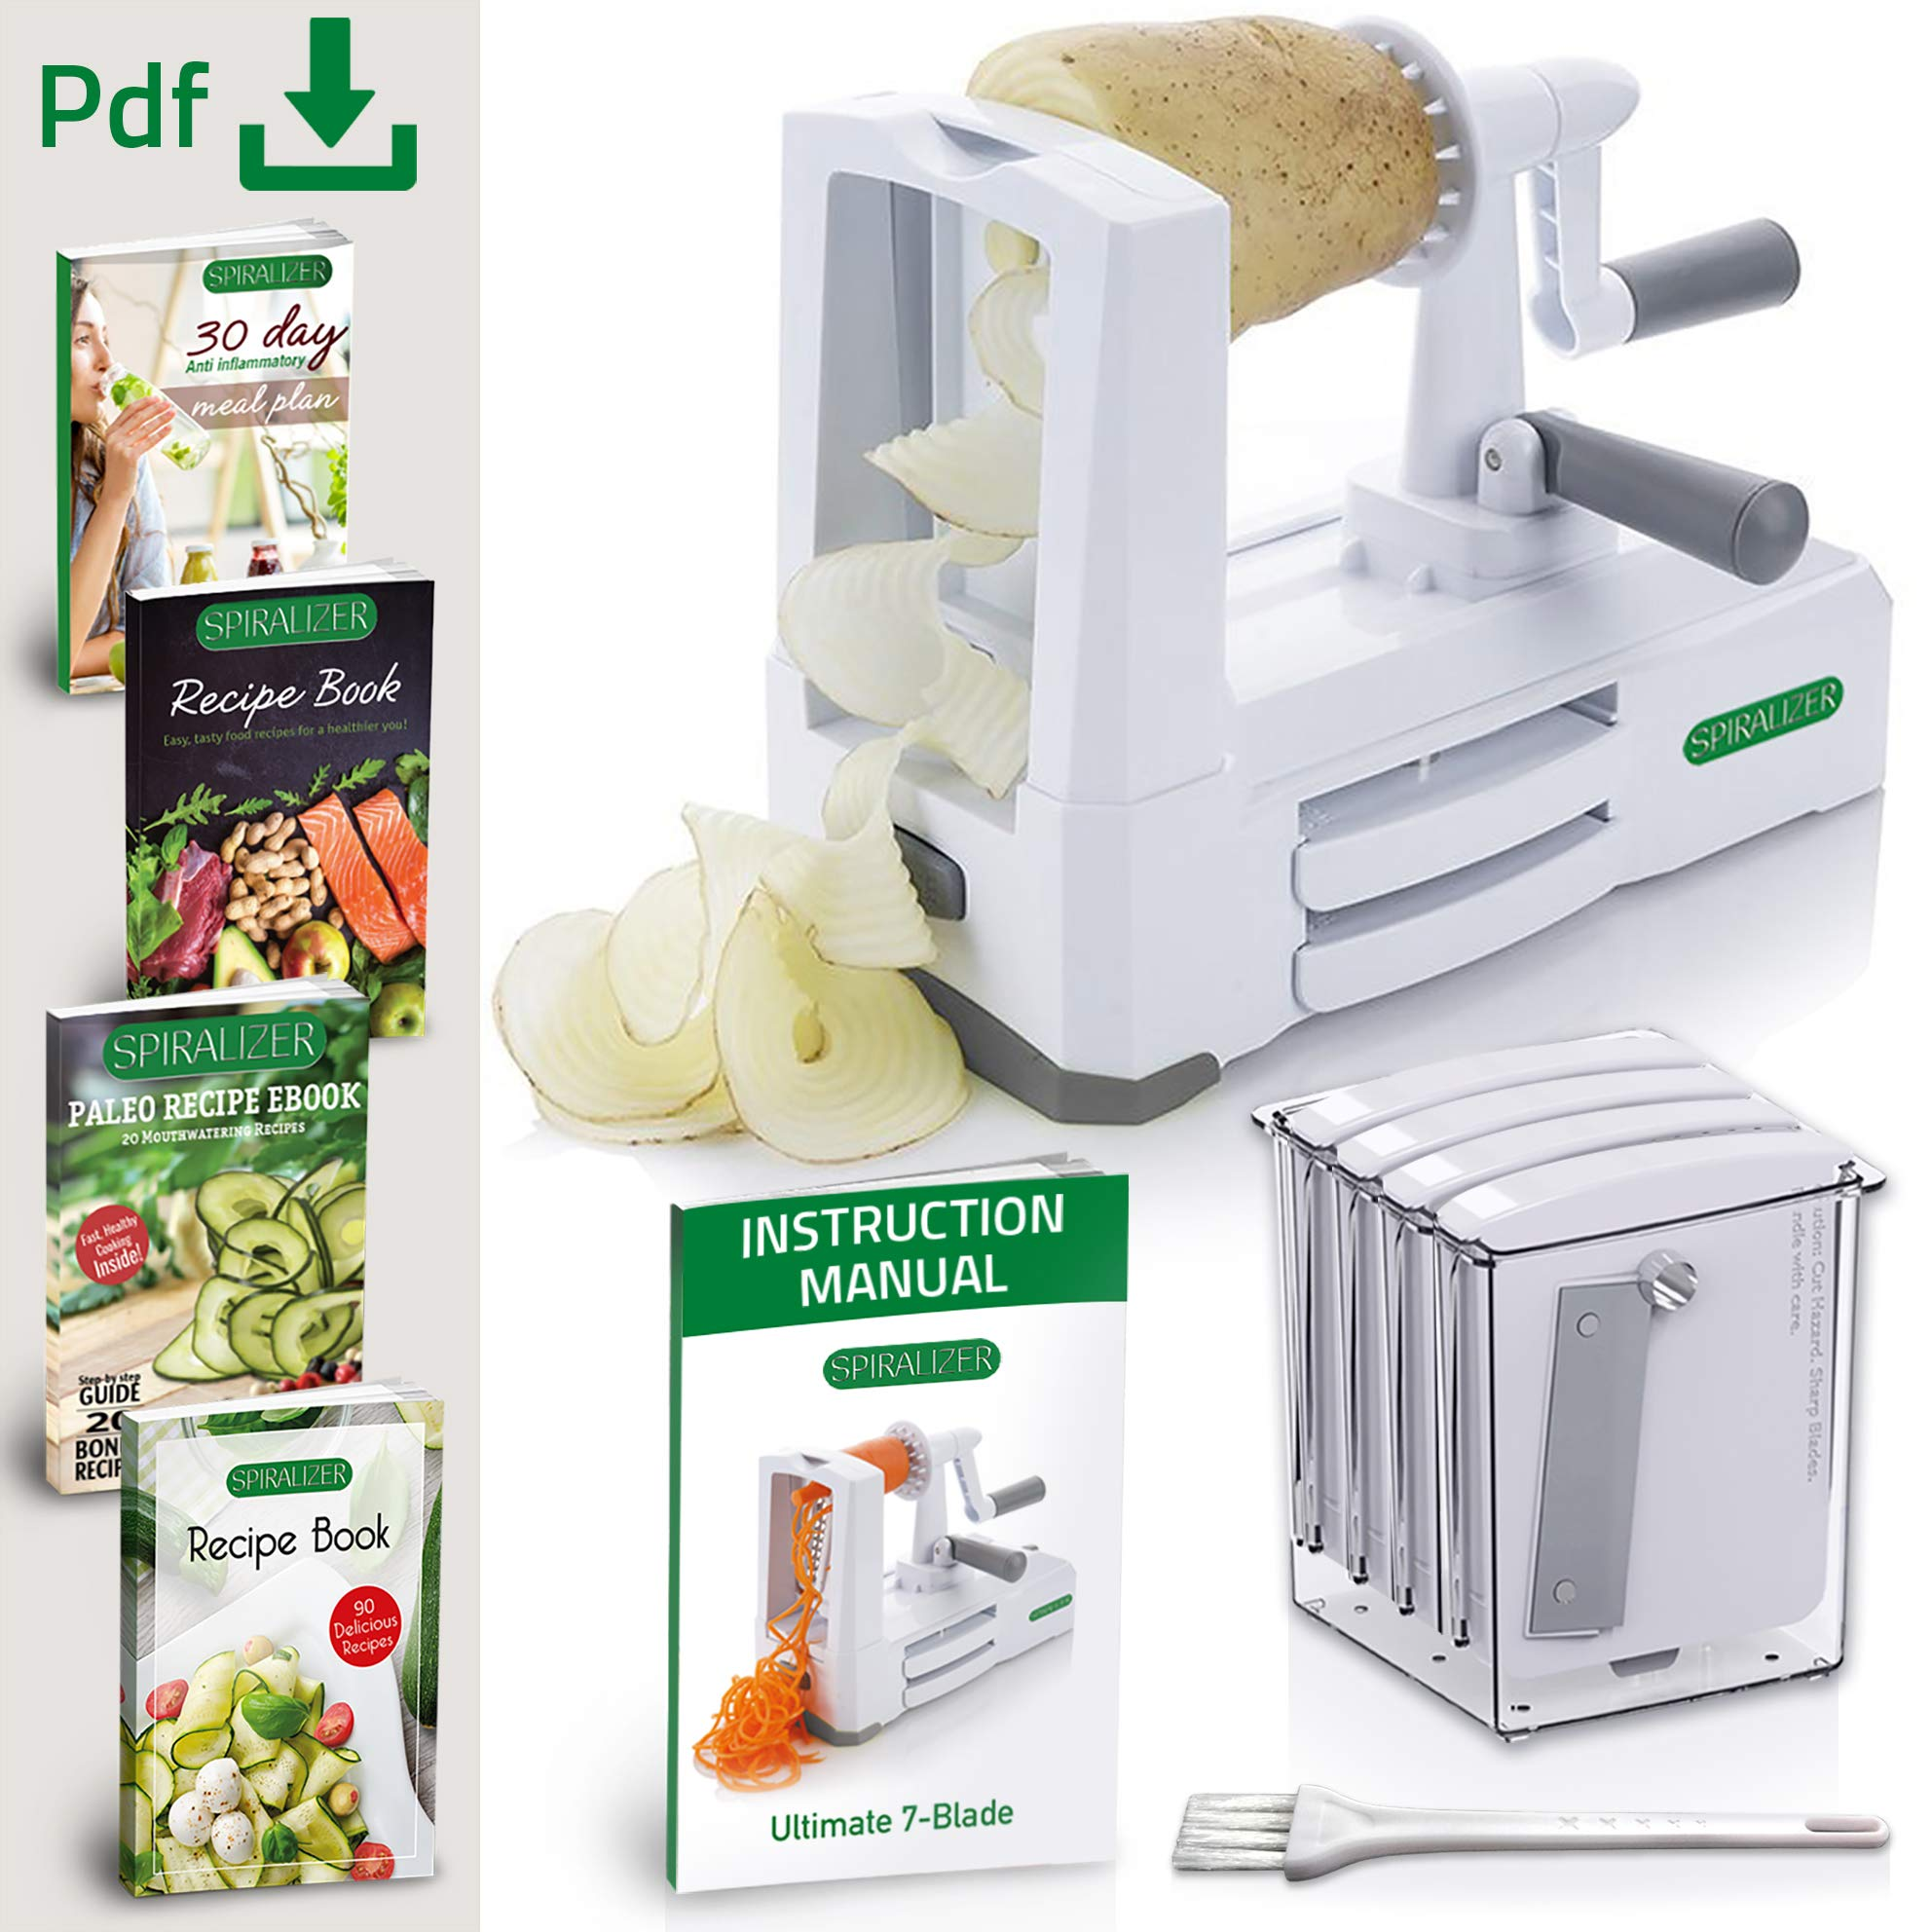 Spiralizer Ultimate 7-Blade Vegetable Slicer, Strongest-and-Heaviest Duty Vegetable Spiral Slicer, Best Veggie Pasta Spaghetti Maker for Keto/Paleo/Gluten-Free, With Extra Blade Caddy & 4 Recipe Ebook by Spiralizer (Image #4)